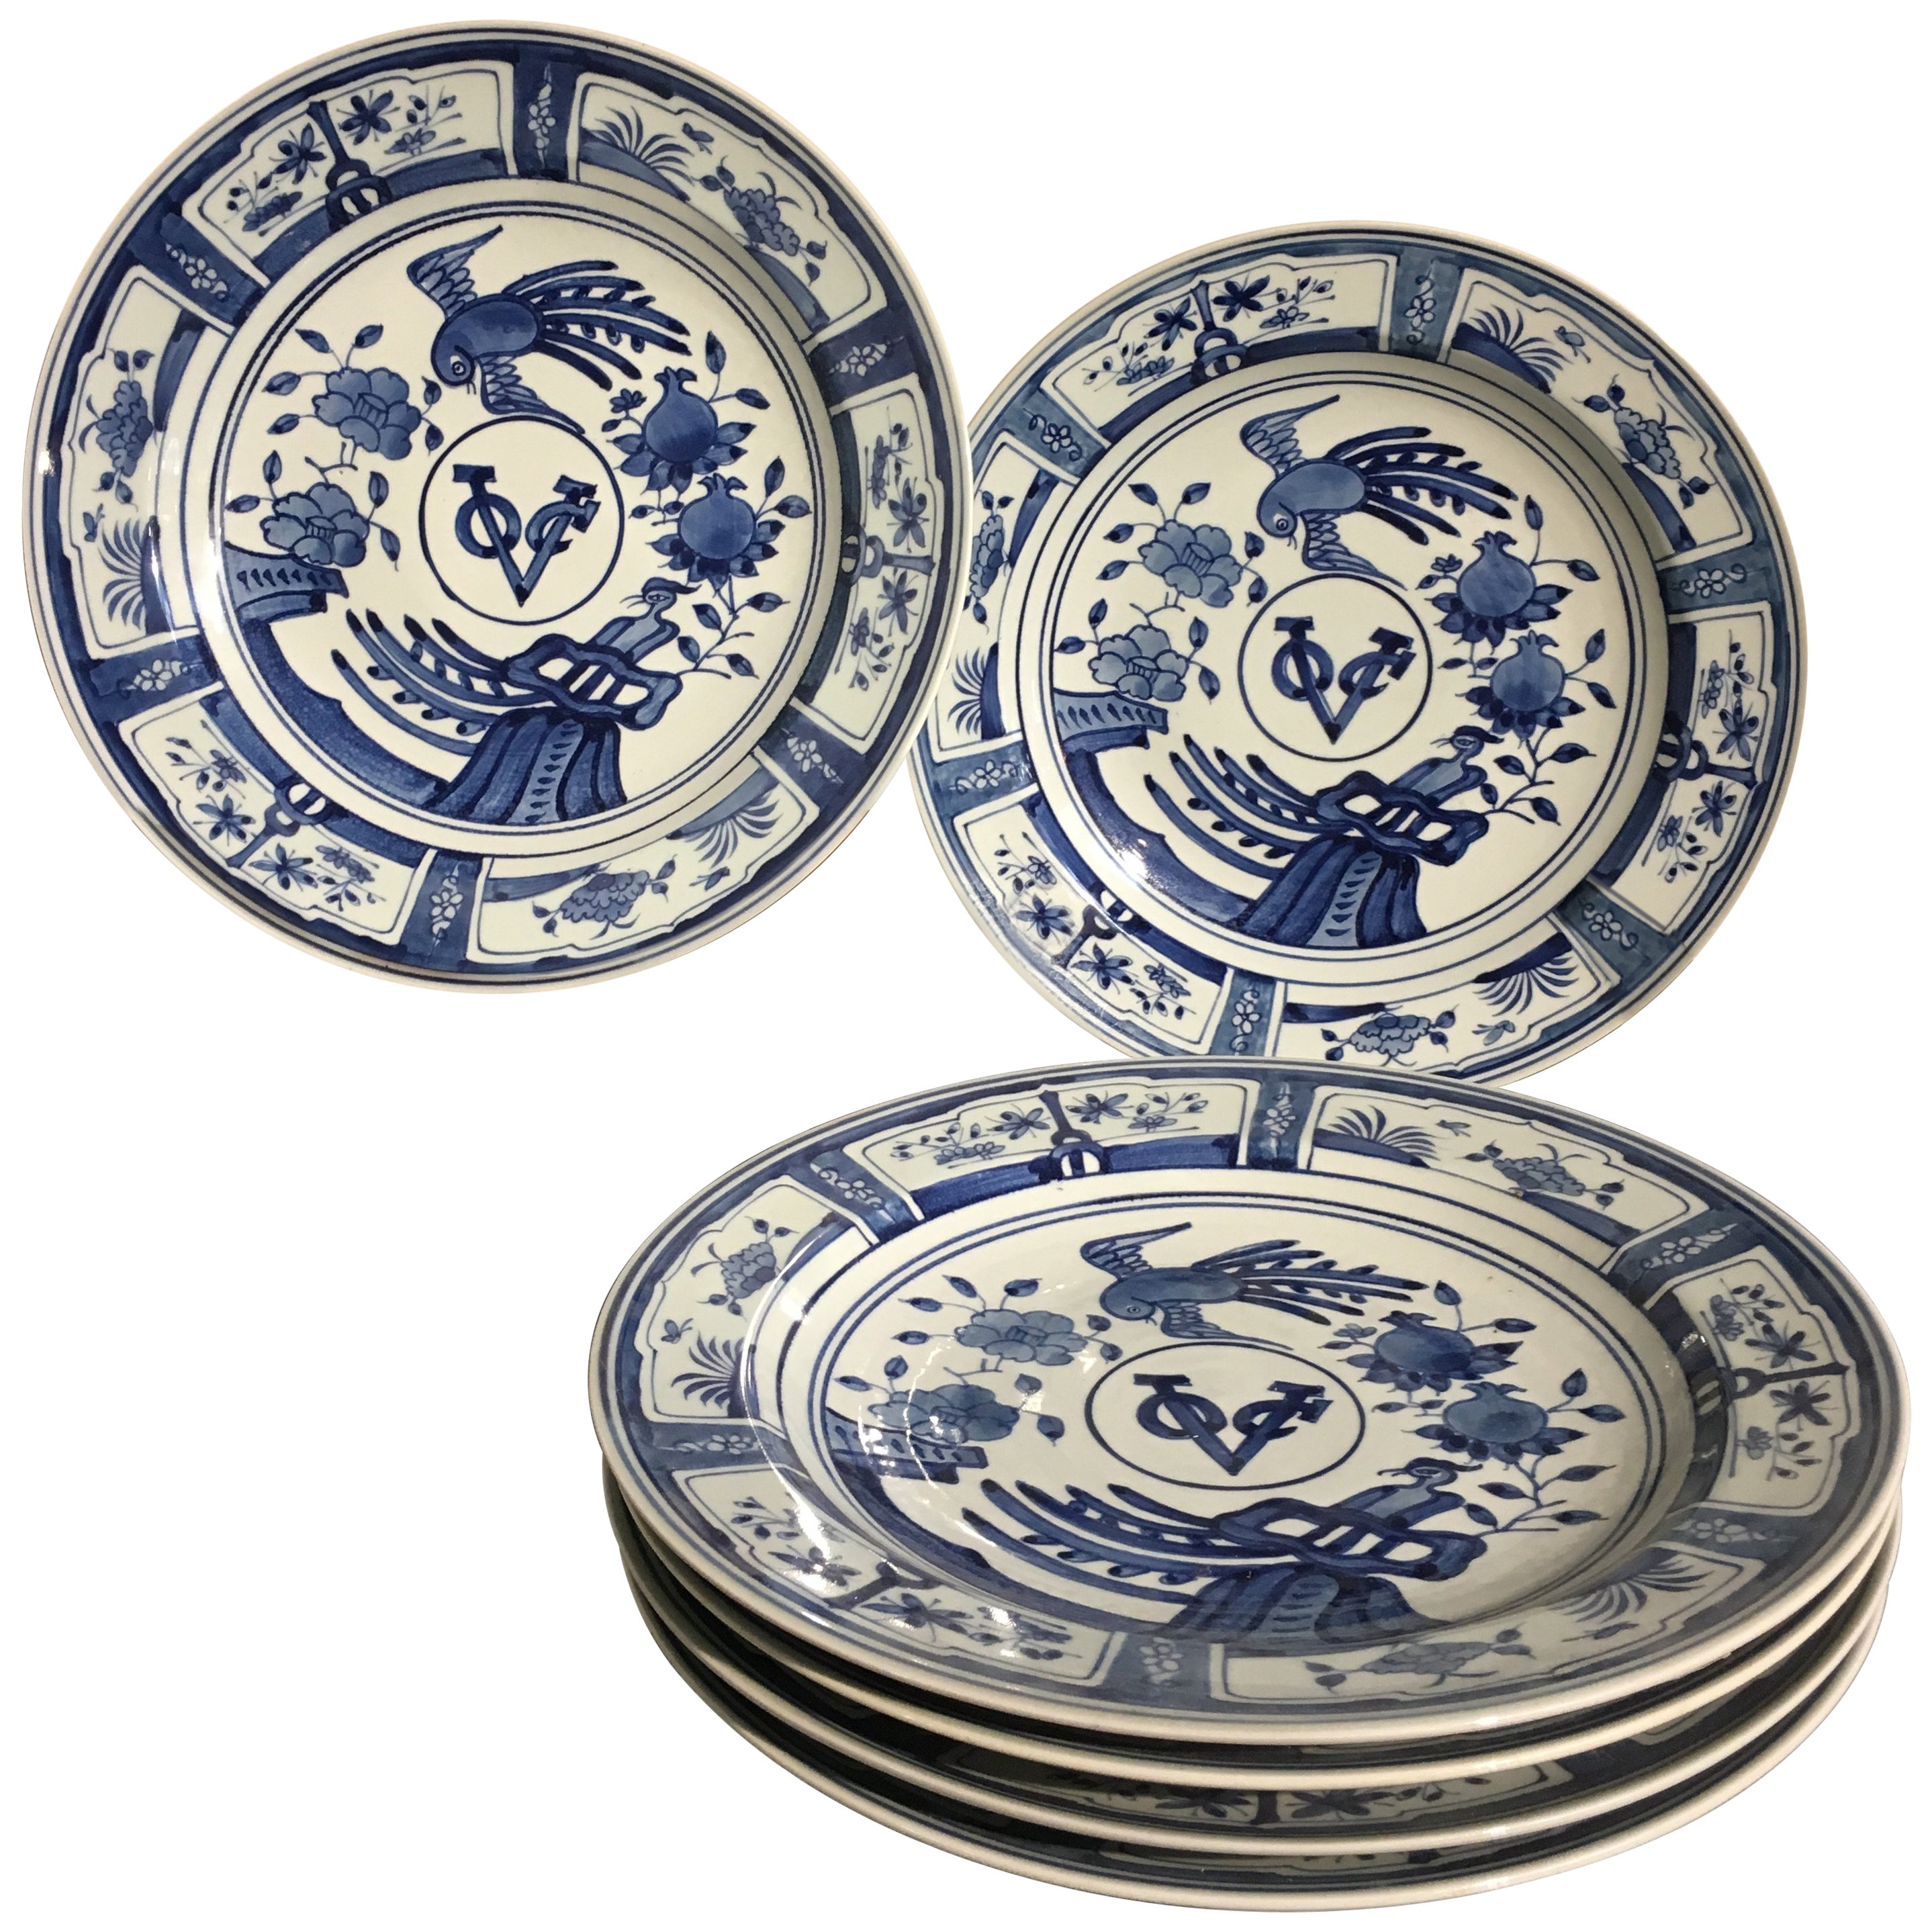 Six VOC Chinese Export Style Blue and White Porcelain Chargers, 20th Century